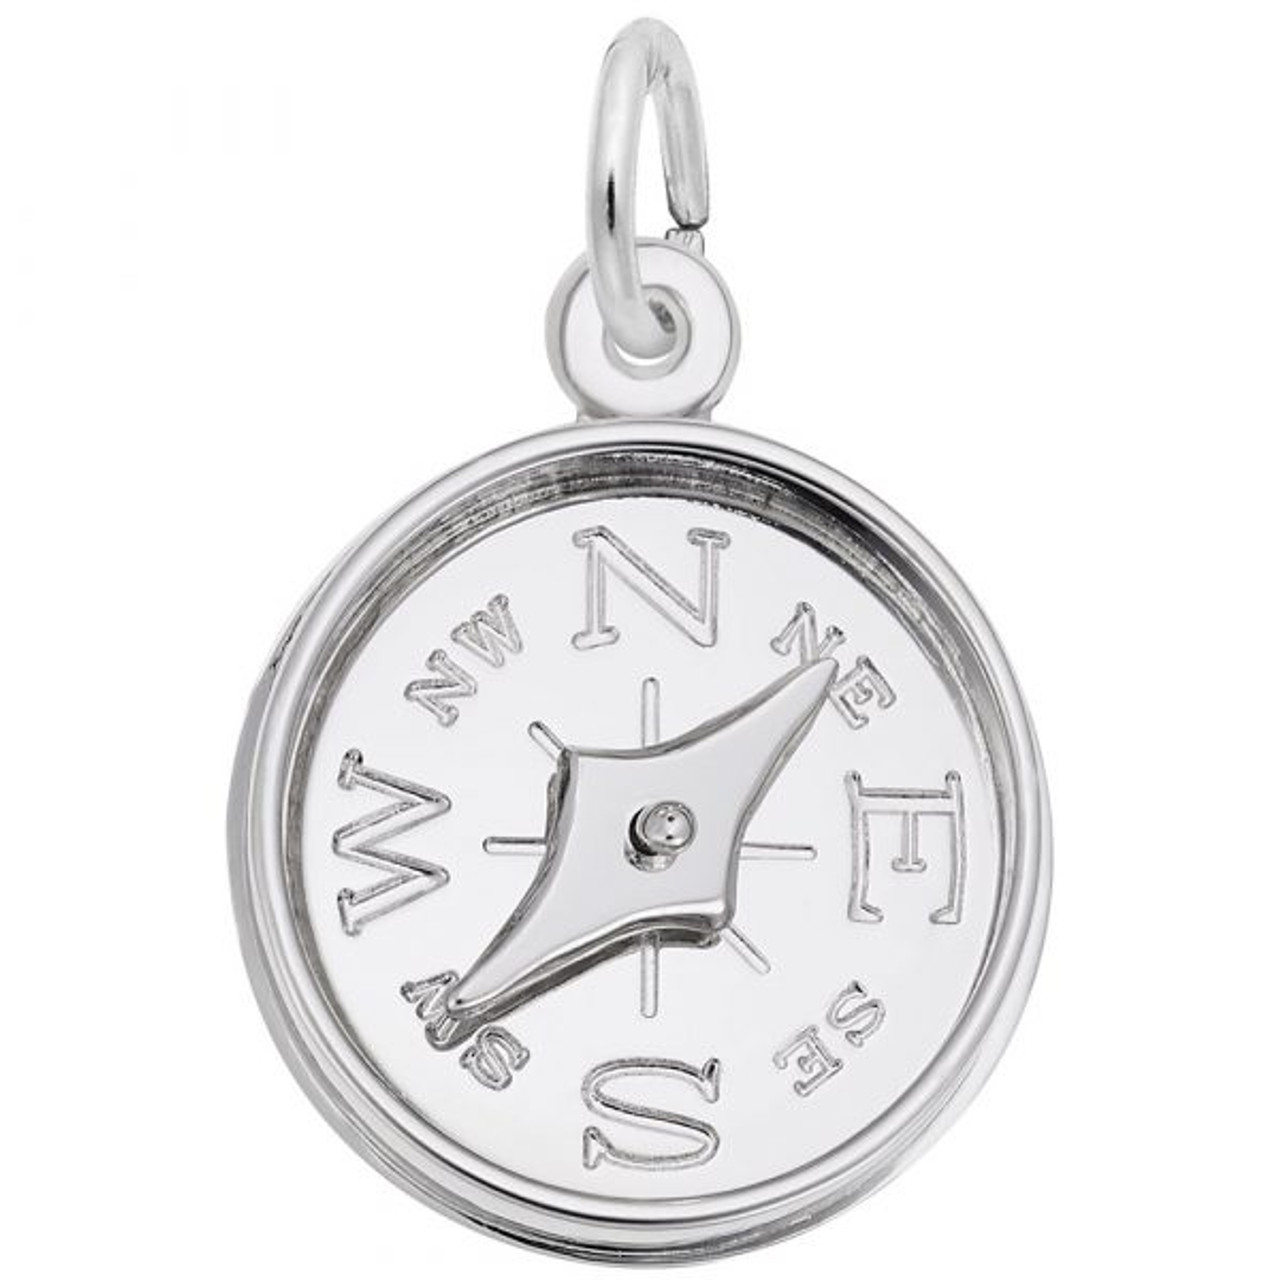 Compass with Needle Charm - Sterling Silver and 14k White Gold